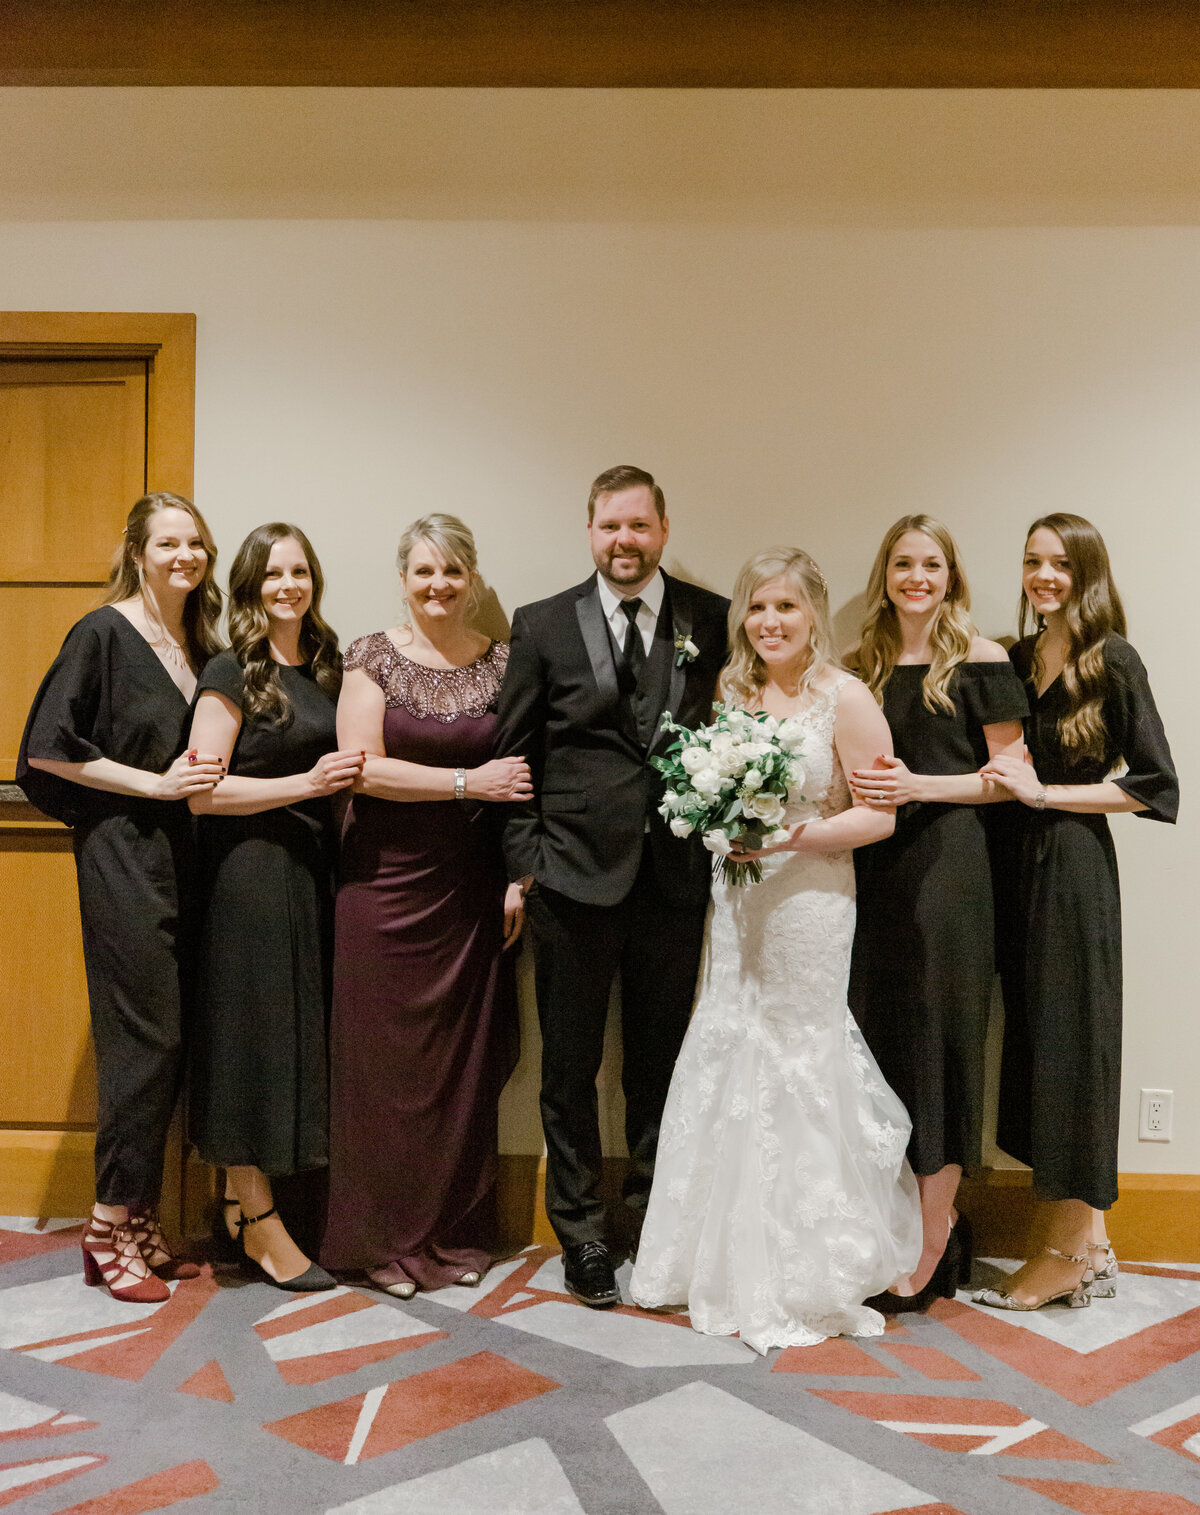 gold-white-black-tie-theme-NYE-wedding-2019-brookstreet-hotel-kanata-ontario-grey-loft-studio-43